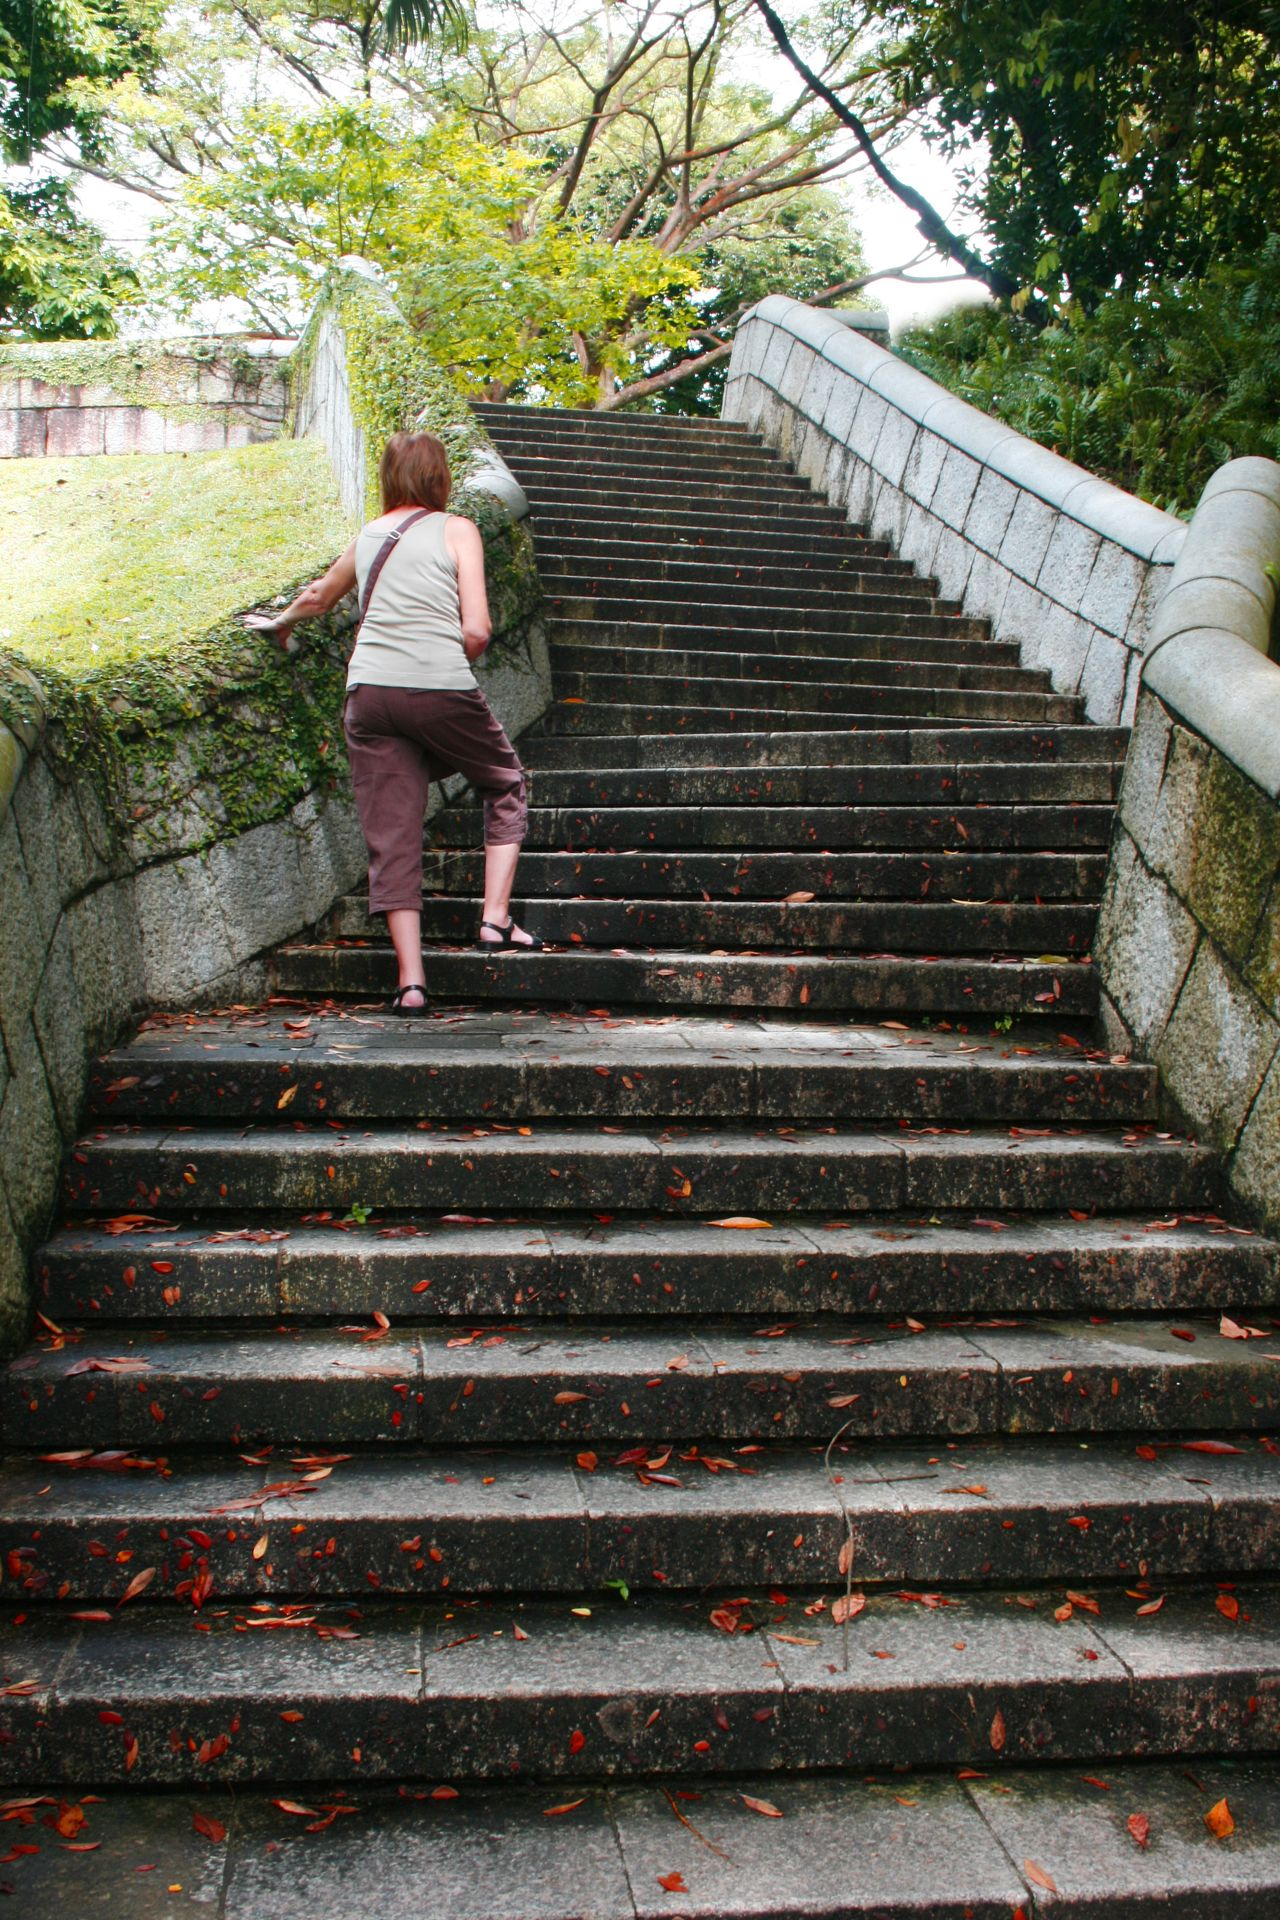 Its hard work for this woman climbing a long set of leaf covered steps Adult Adults Only Architecture Climb Up Climbing Day Full Length Middle Aged Woman Nature One Person Outdoors People Rear View Staircase Steps Steps And Staircases Tiring Travel Travel Destinations Tree Walking